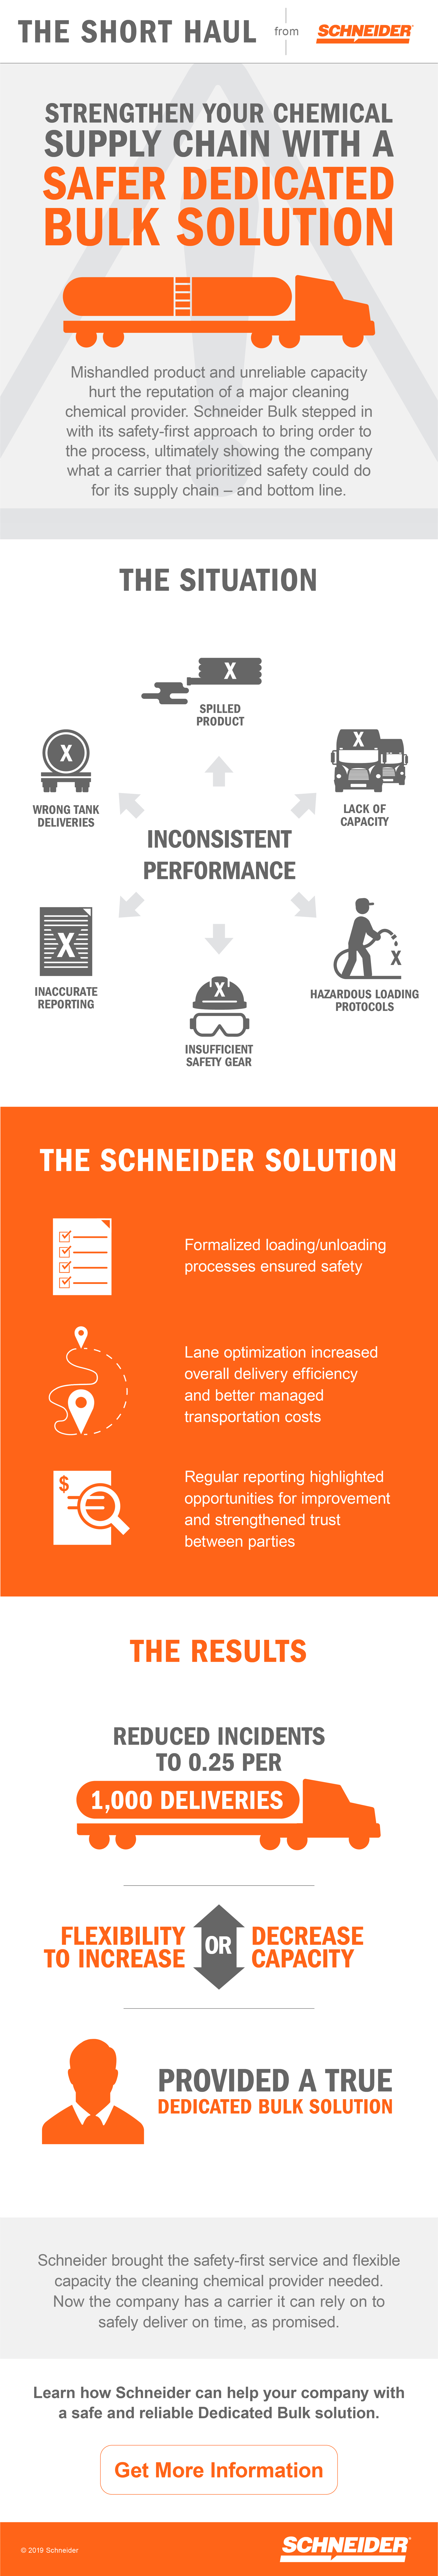 A safety-first dedicated Bulk solution for chemical supply chain for a safer transportation solution